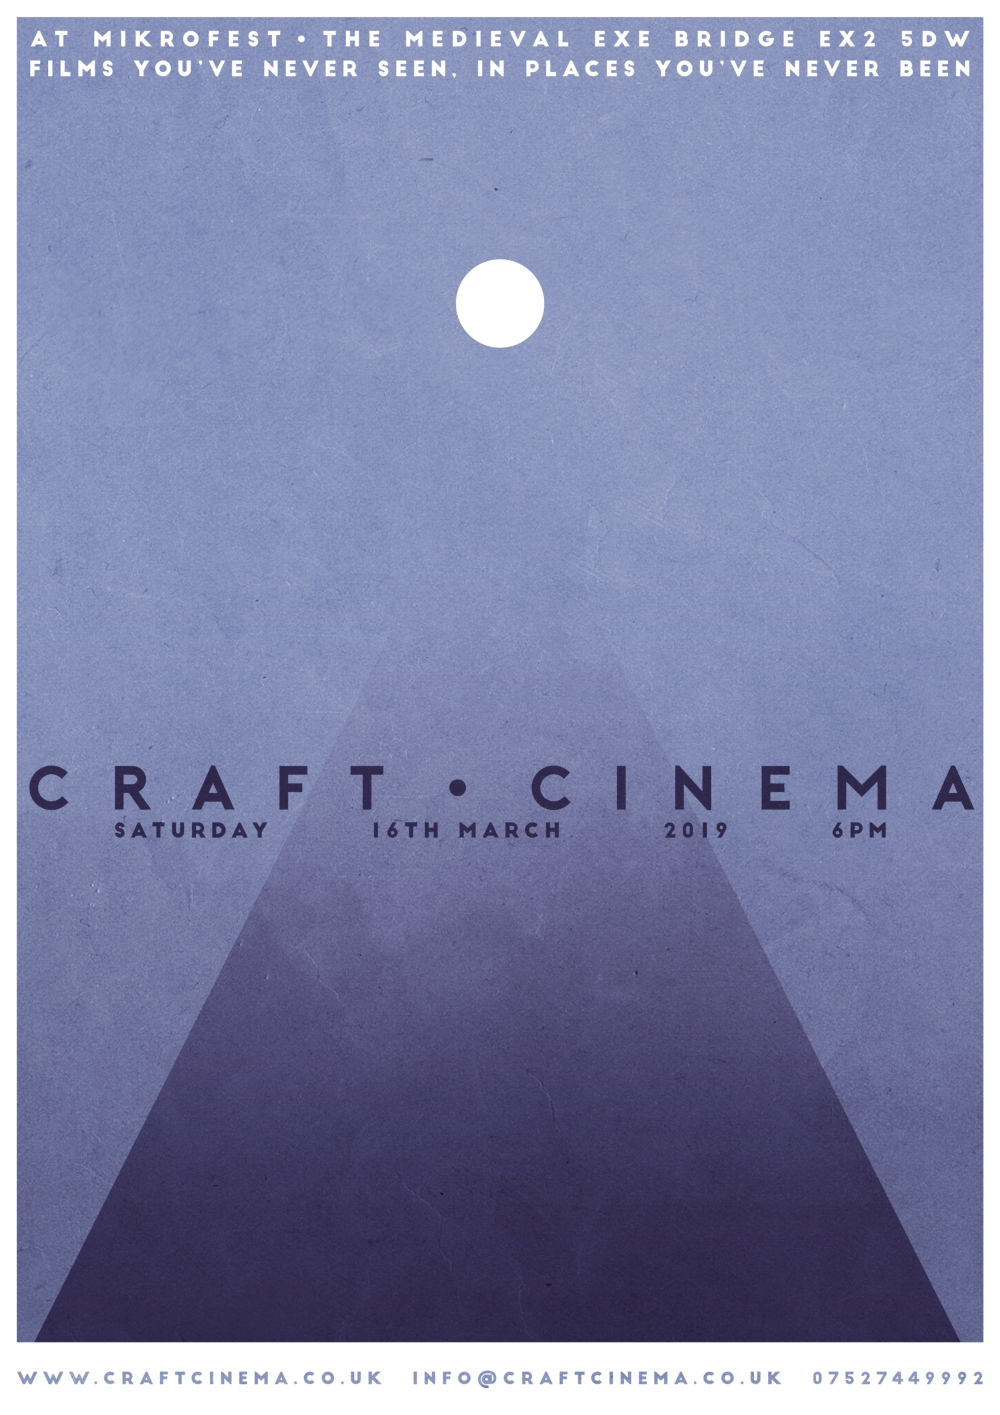 Craft Cinema poster designed by Poster design by Adi Stone